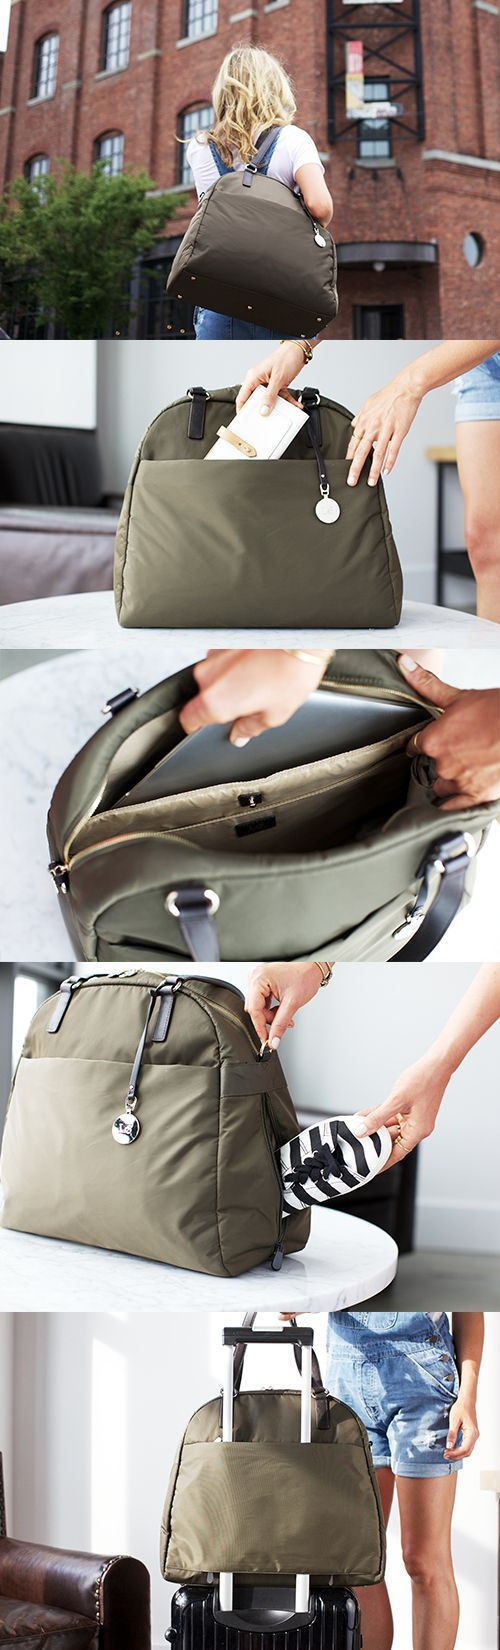 """""""The OG"""" - lightweight travel bag, tech friendly laptop tote, and stylish gym bag. Designed by Lo & Sons - loandsons.com."""